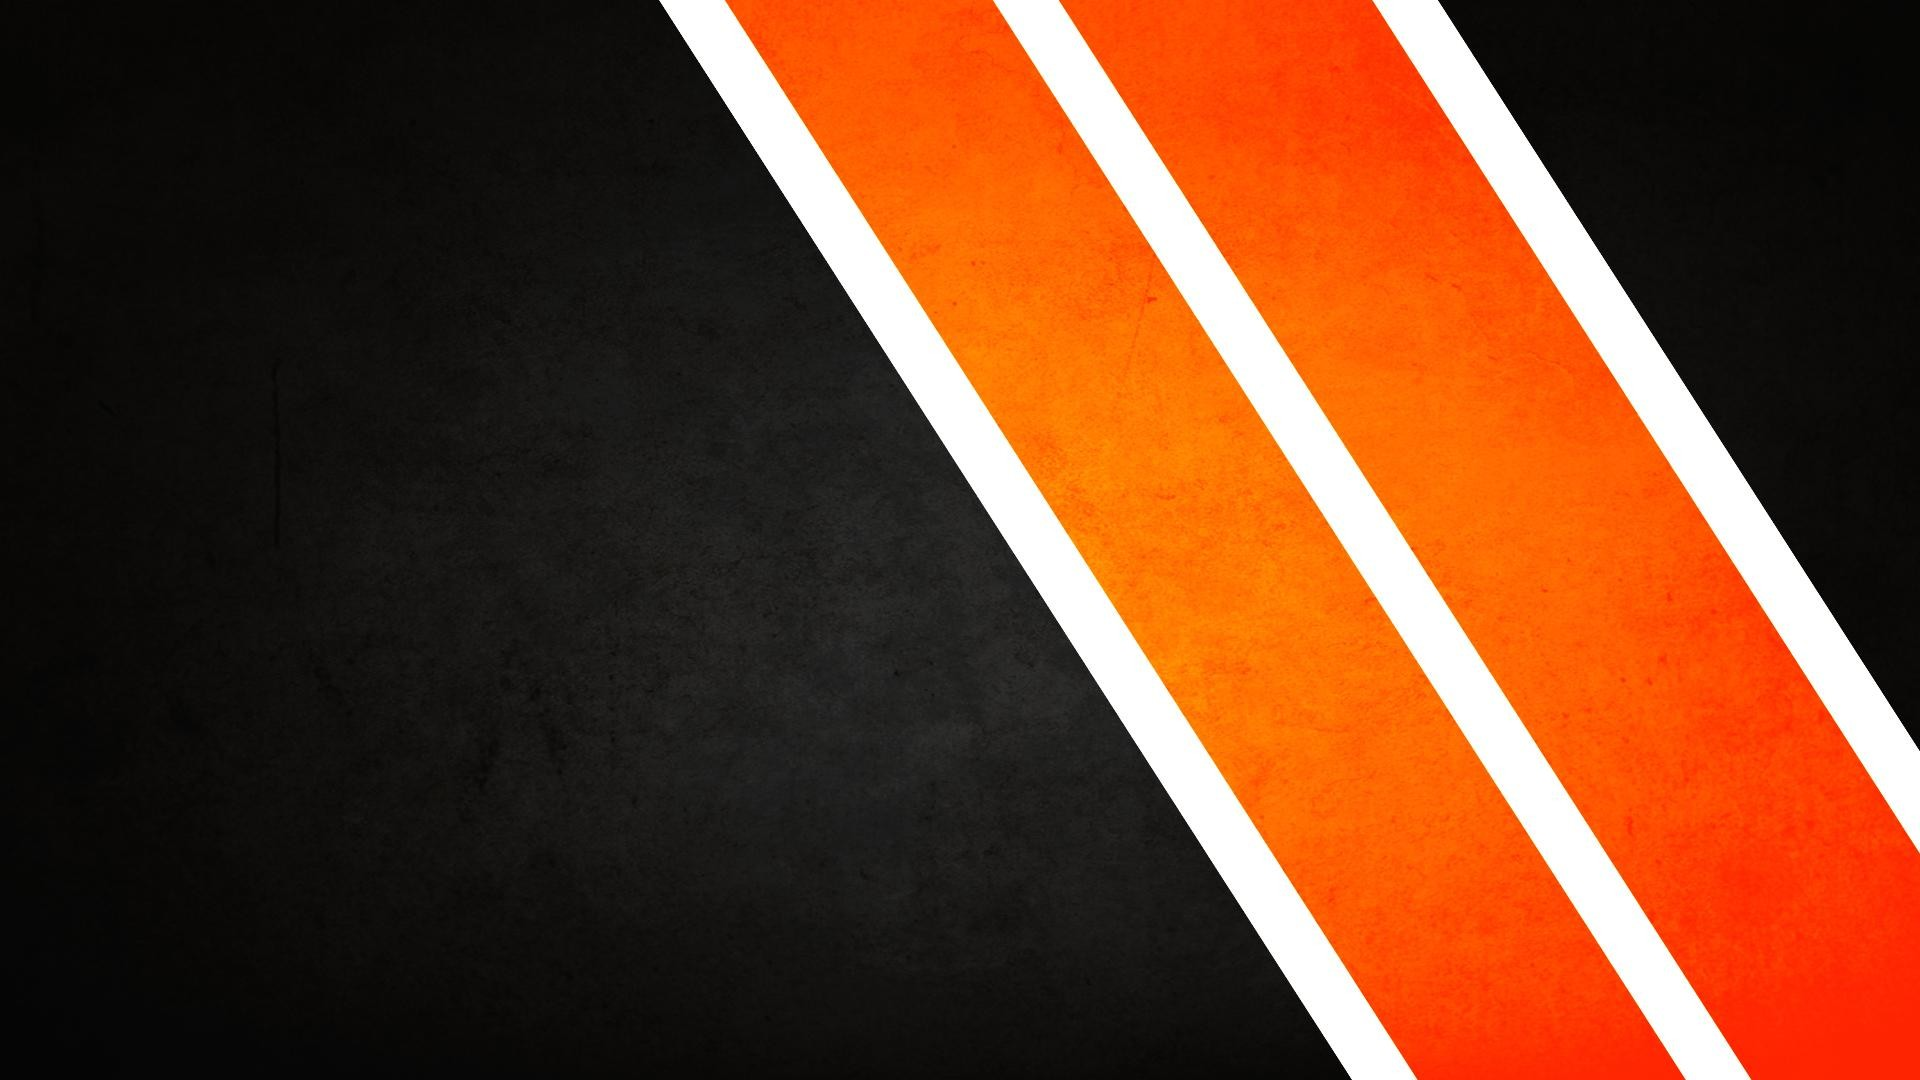 Black and Orange Wallpaper 74 images 1920x1080